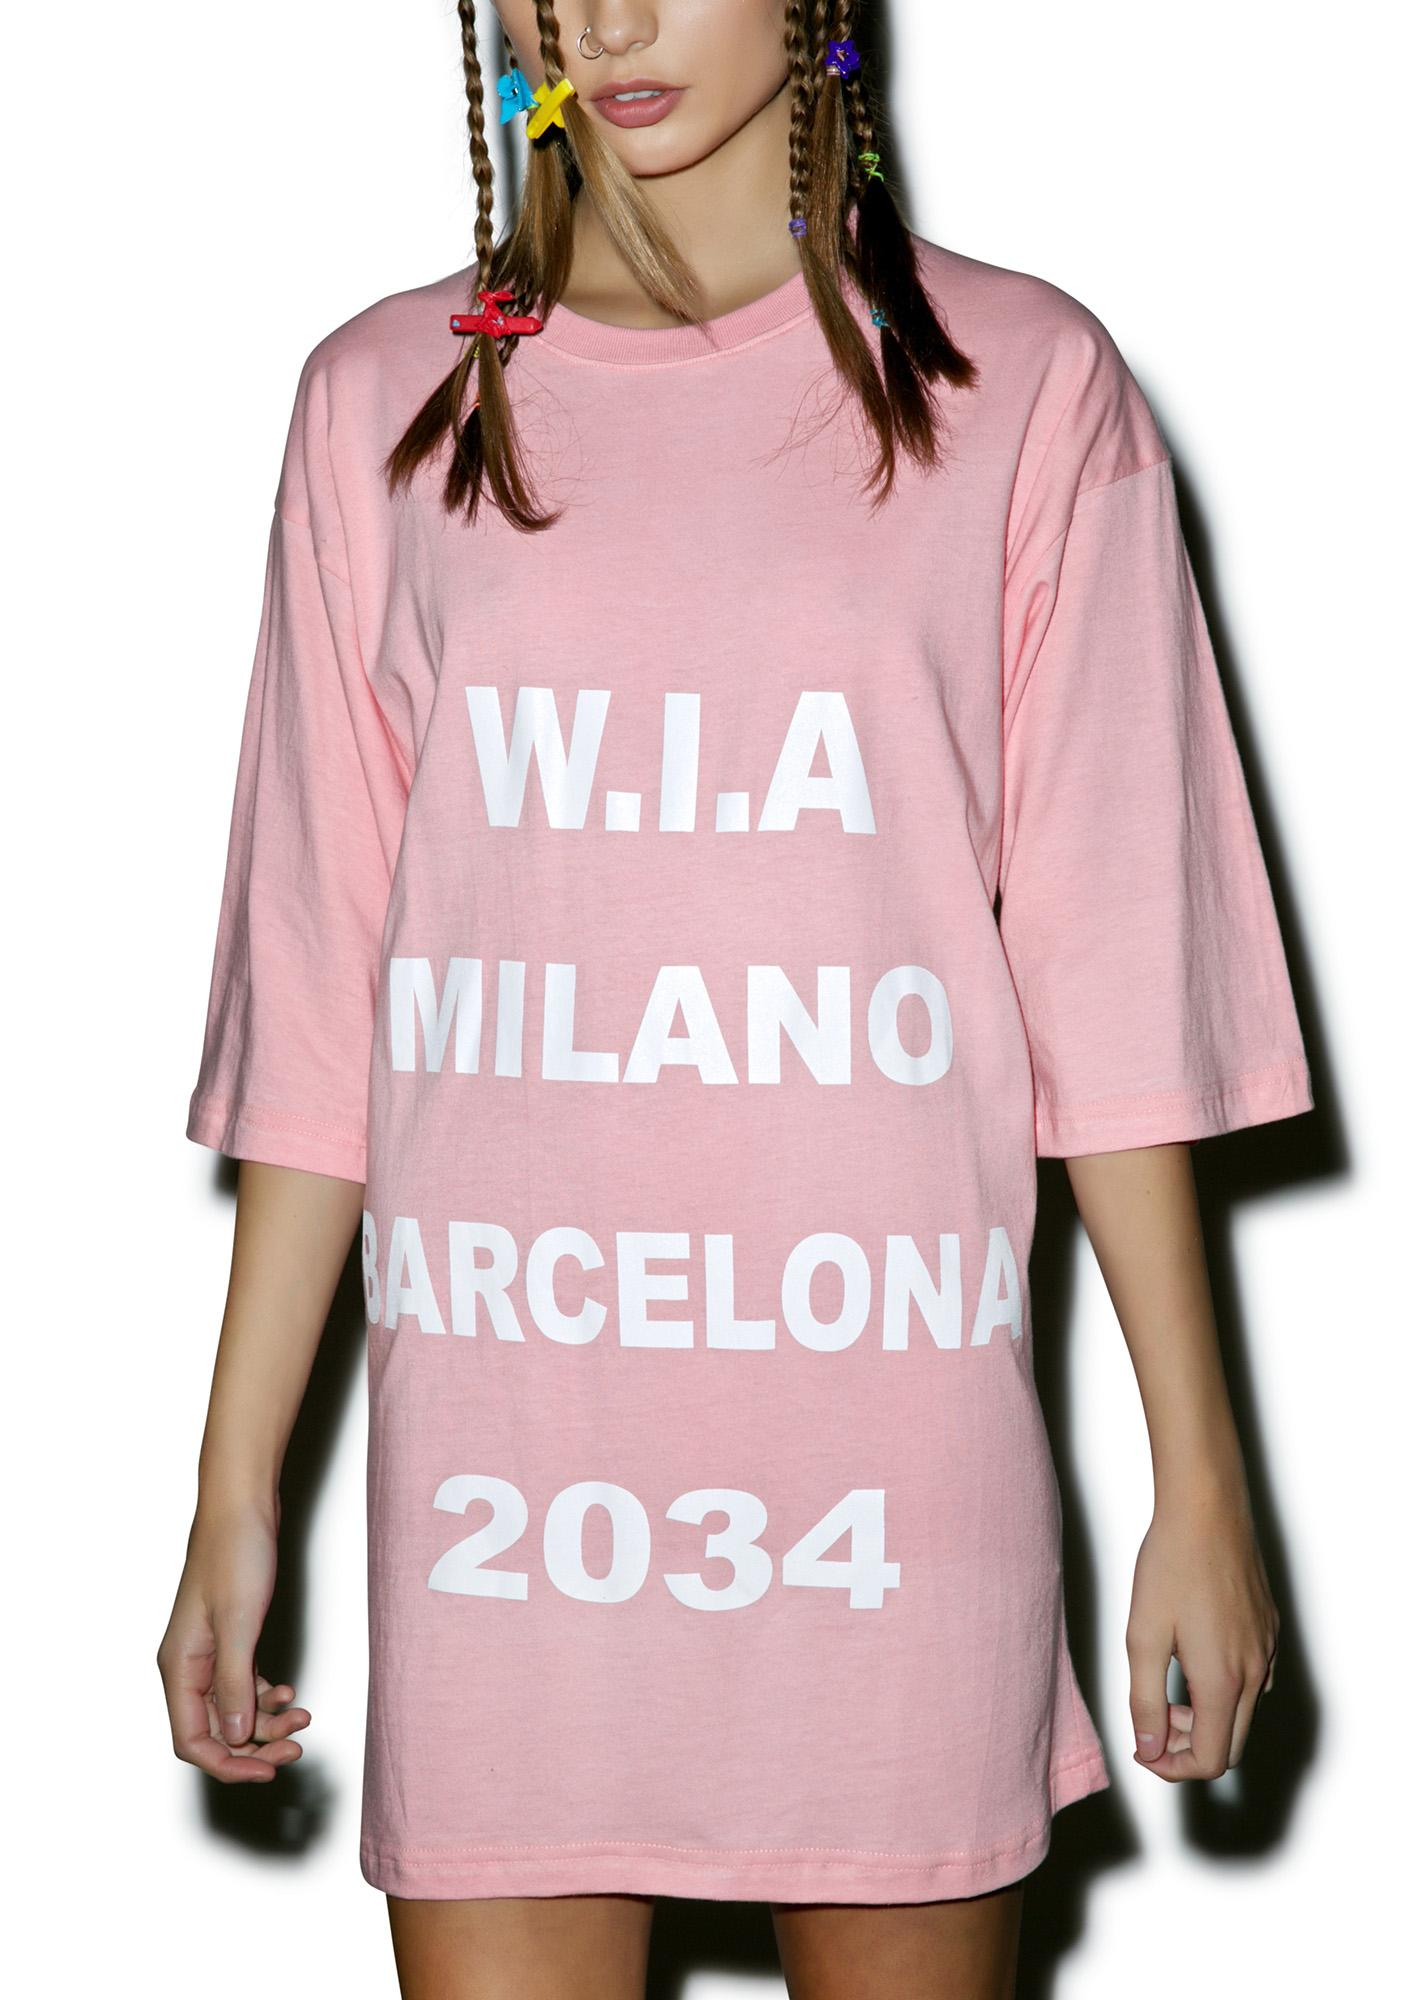 W.I.A Limited Edition Vol. 2 T-shirt